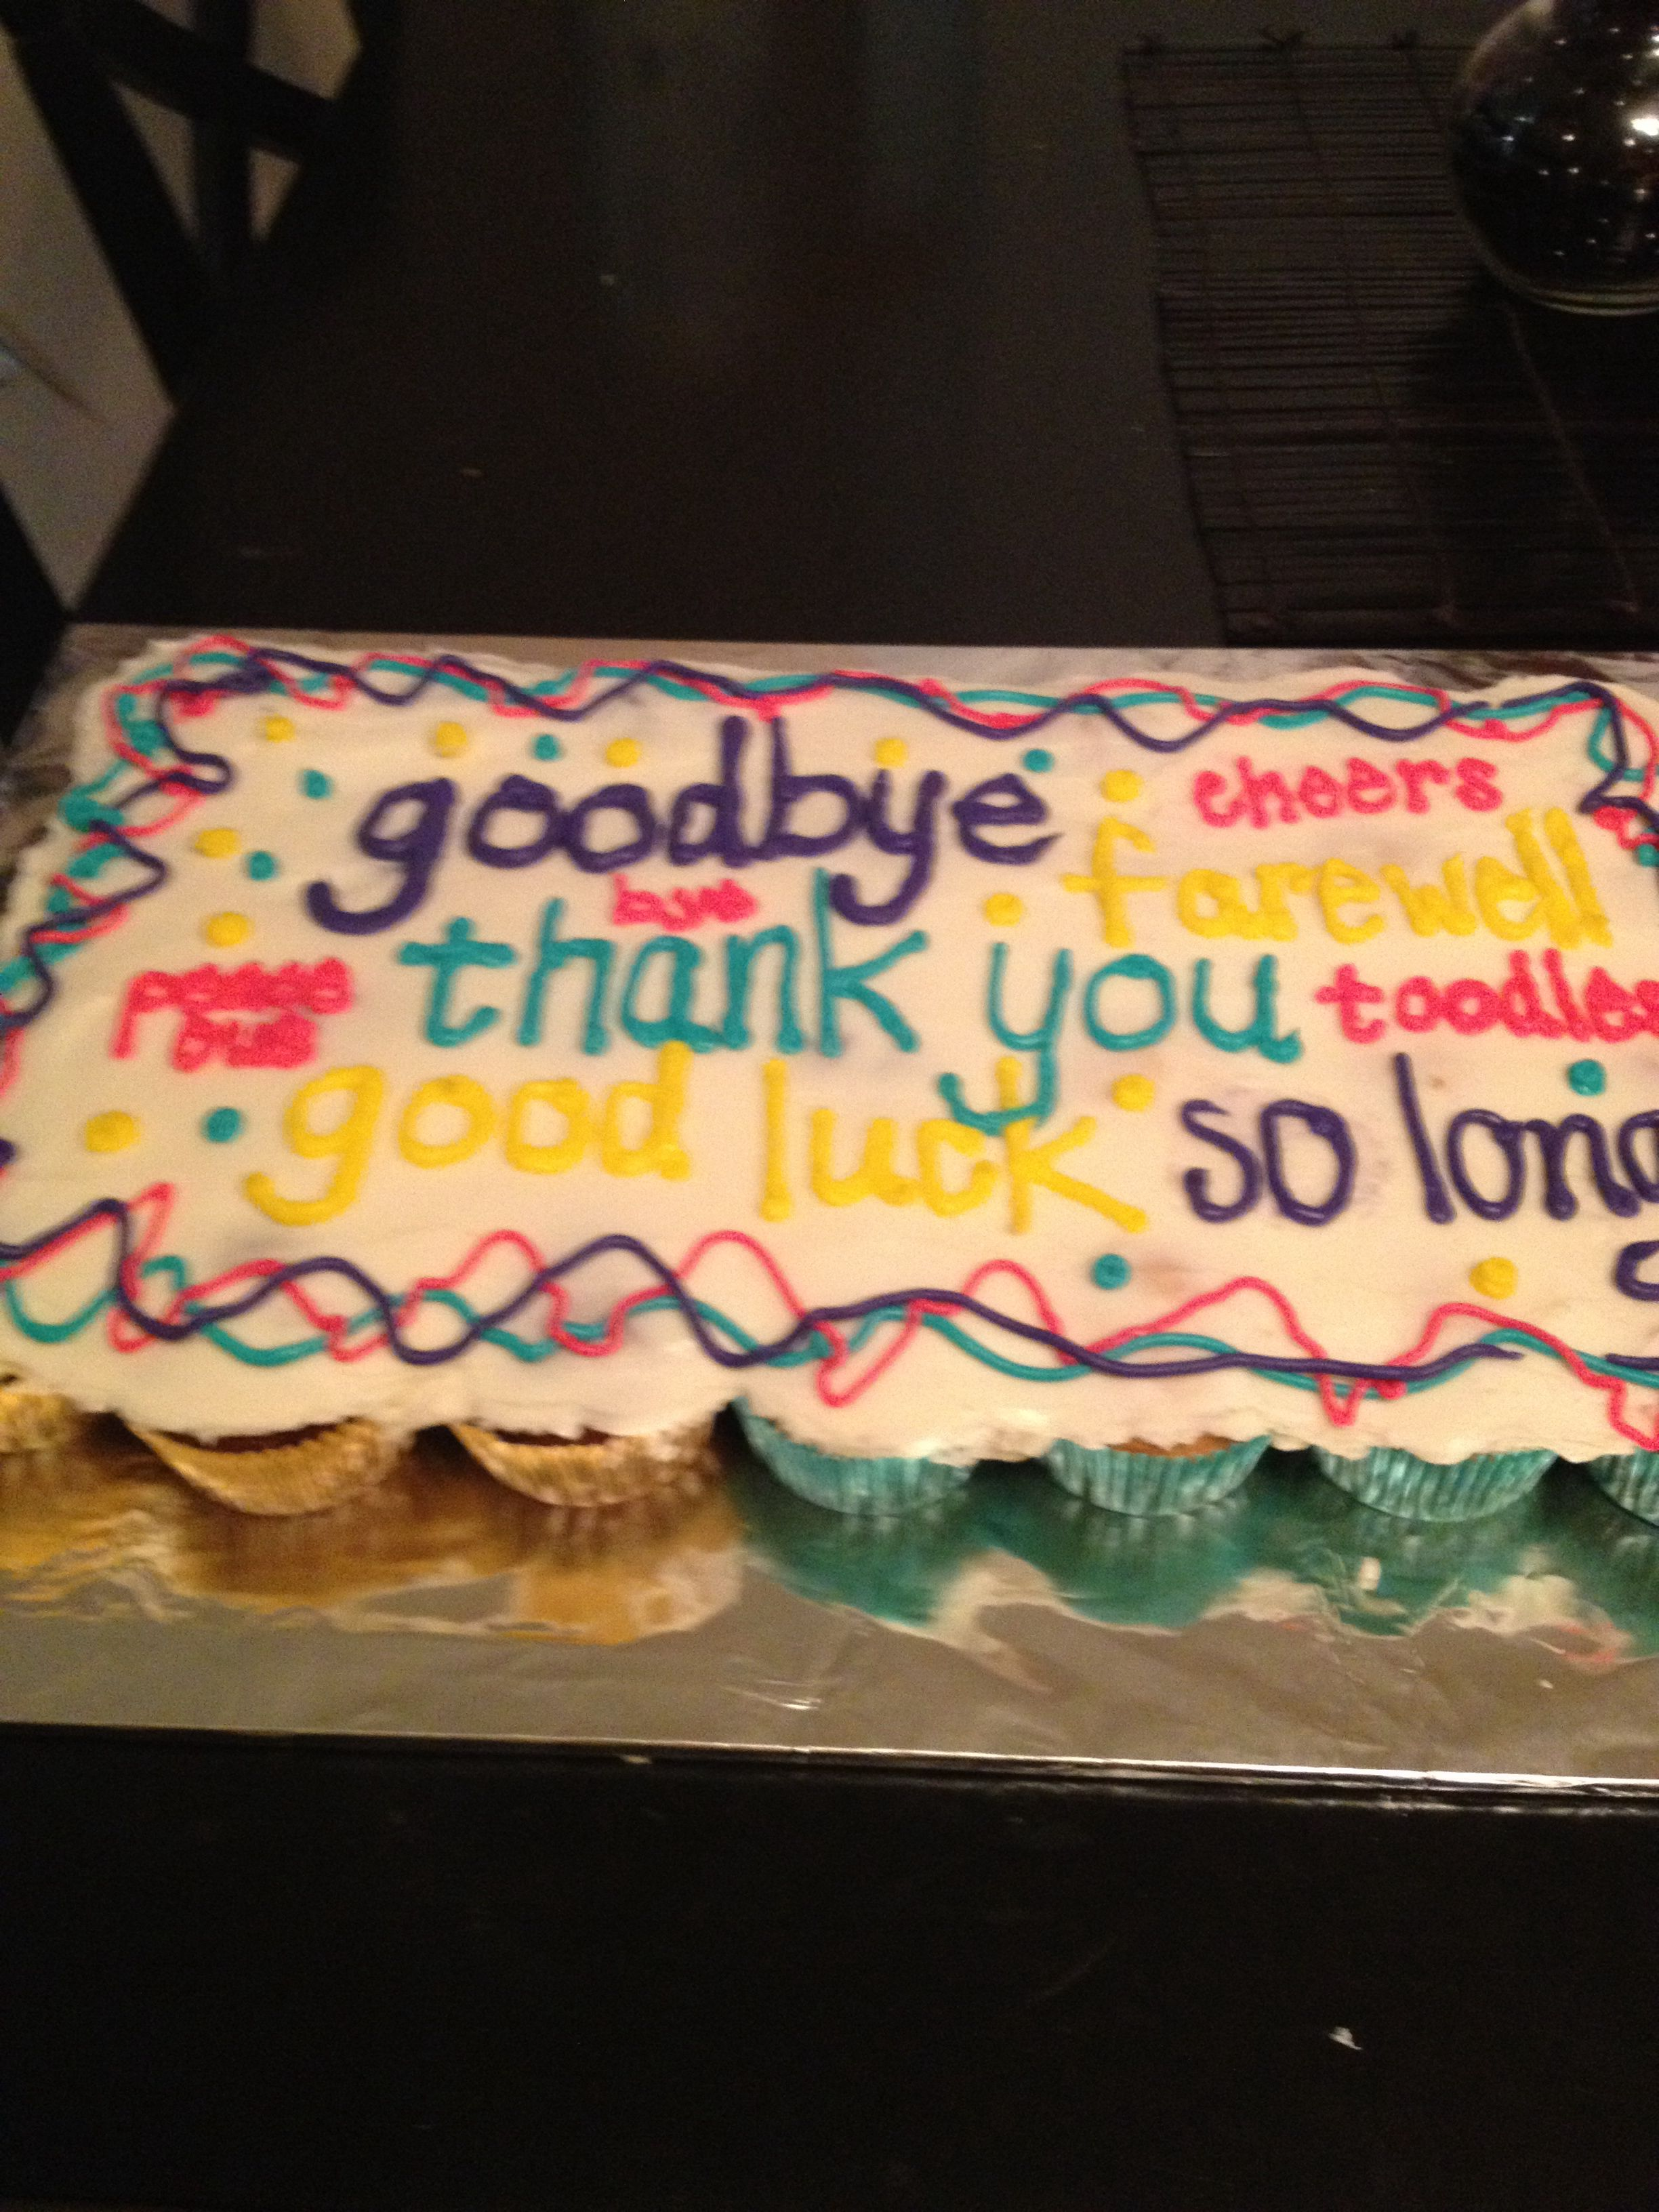 Farewell cake | Going away cakes, Farewell cake, Party cakes